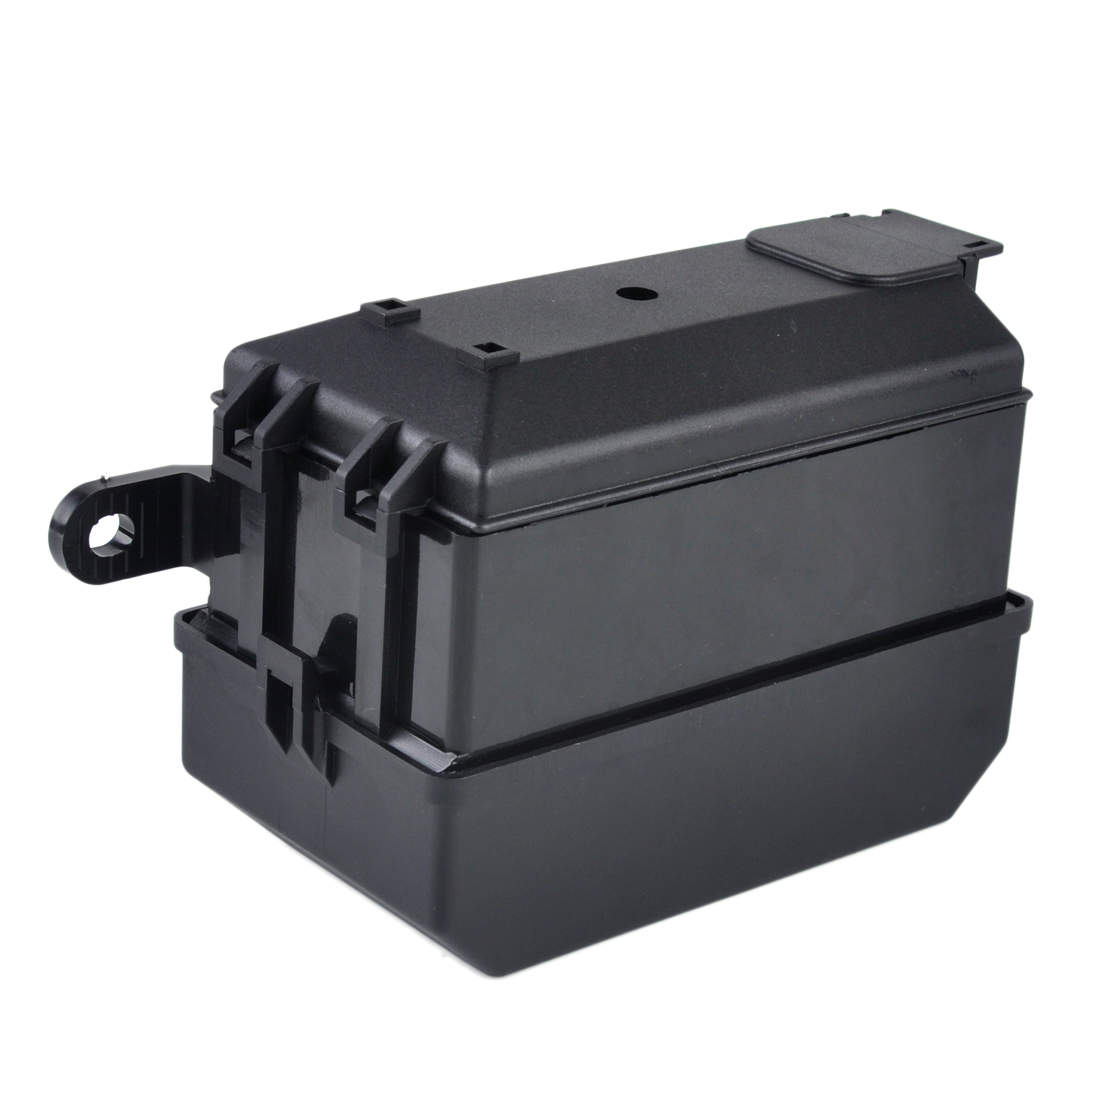 DWCX New Auto Car Fuse Relay Holder Box 6 Socket 5 Road The Nacelle Insurance Vehicle relay holder box picture more detailed picture about dwcx new Automotive Relay Box at panicattacktreatment.co